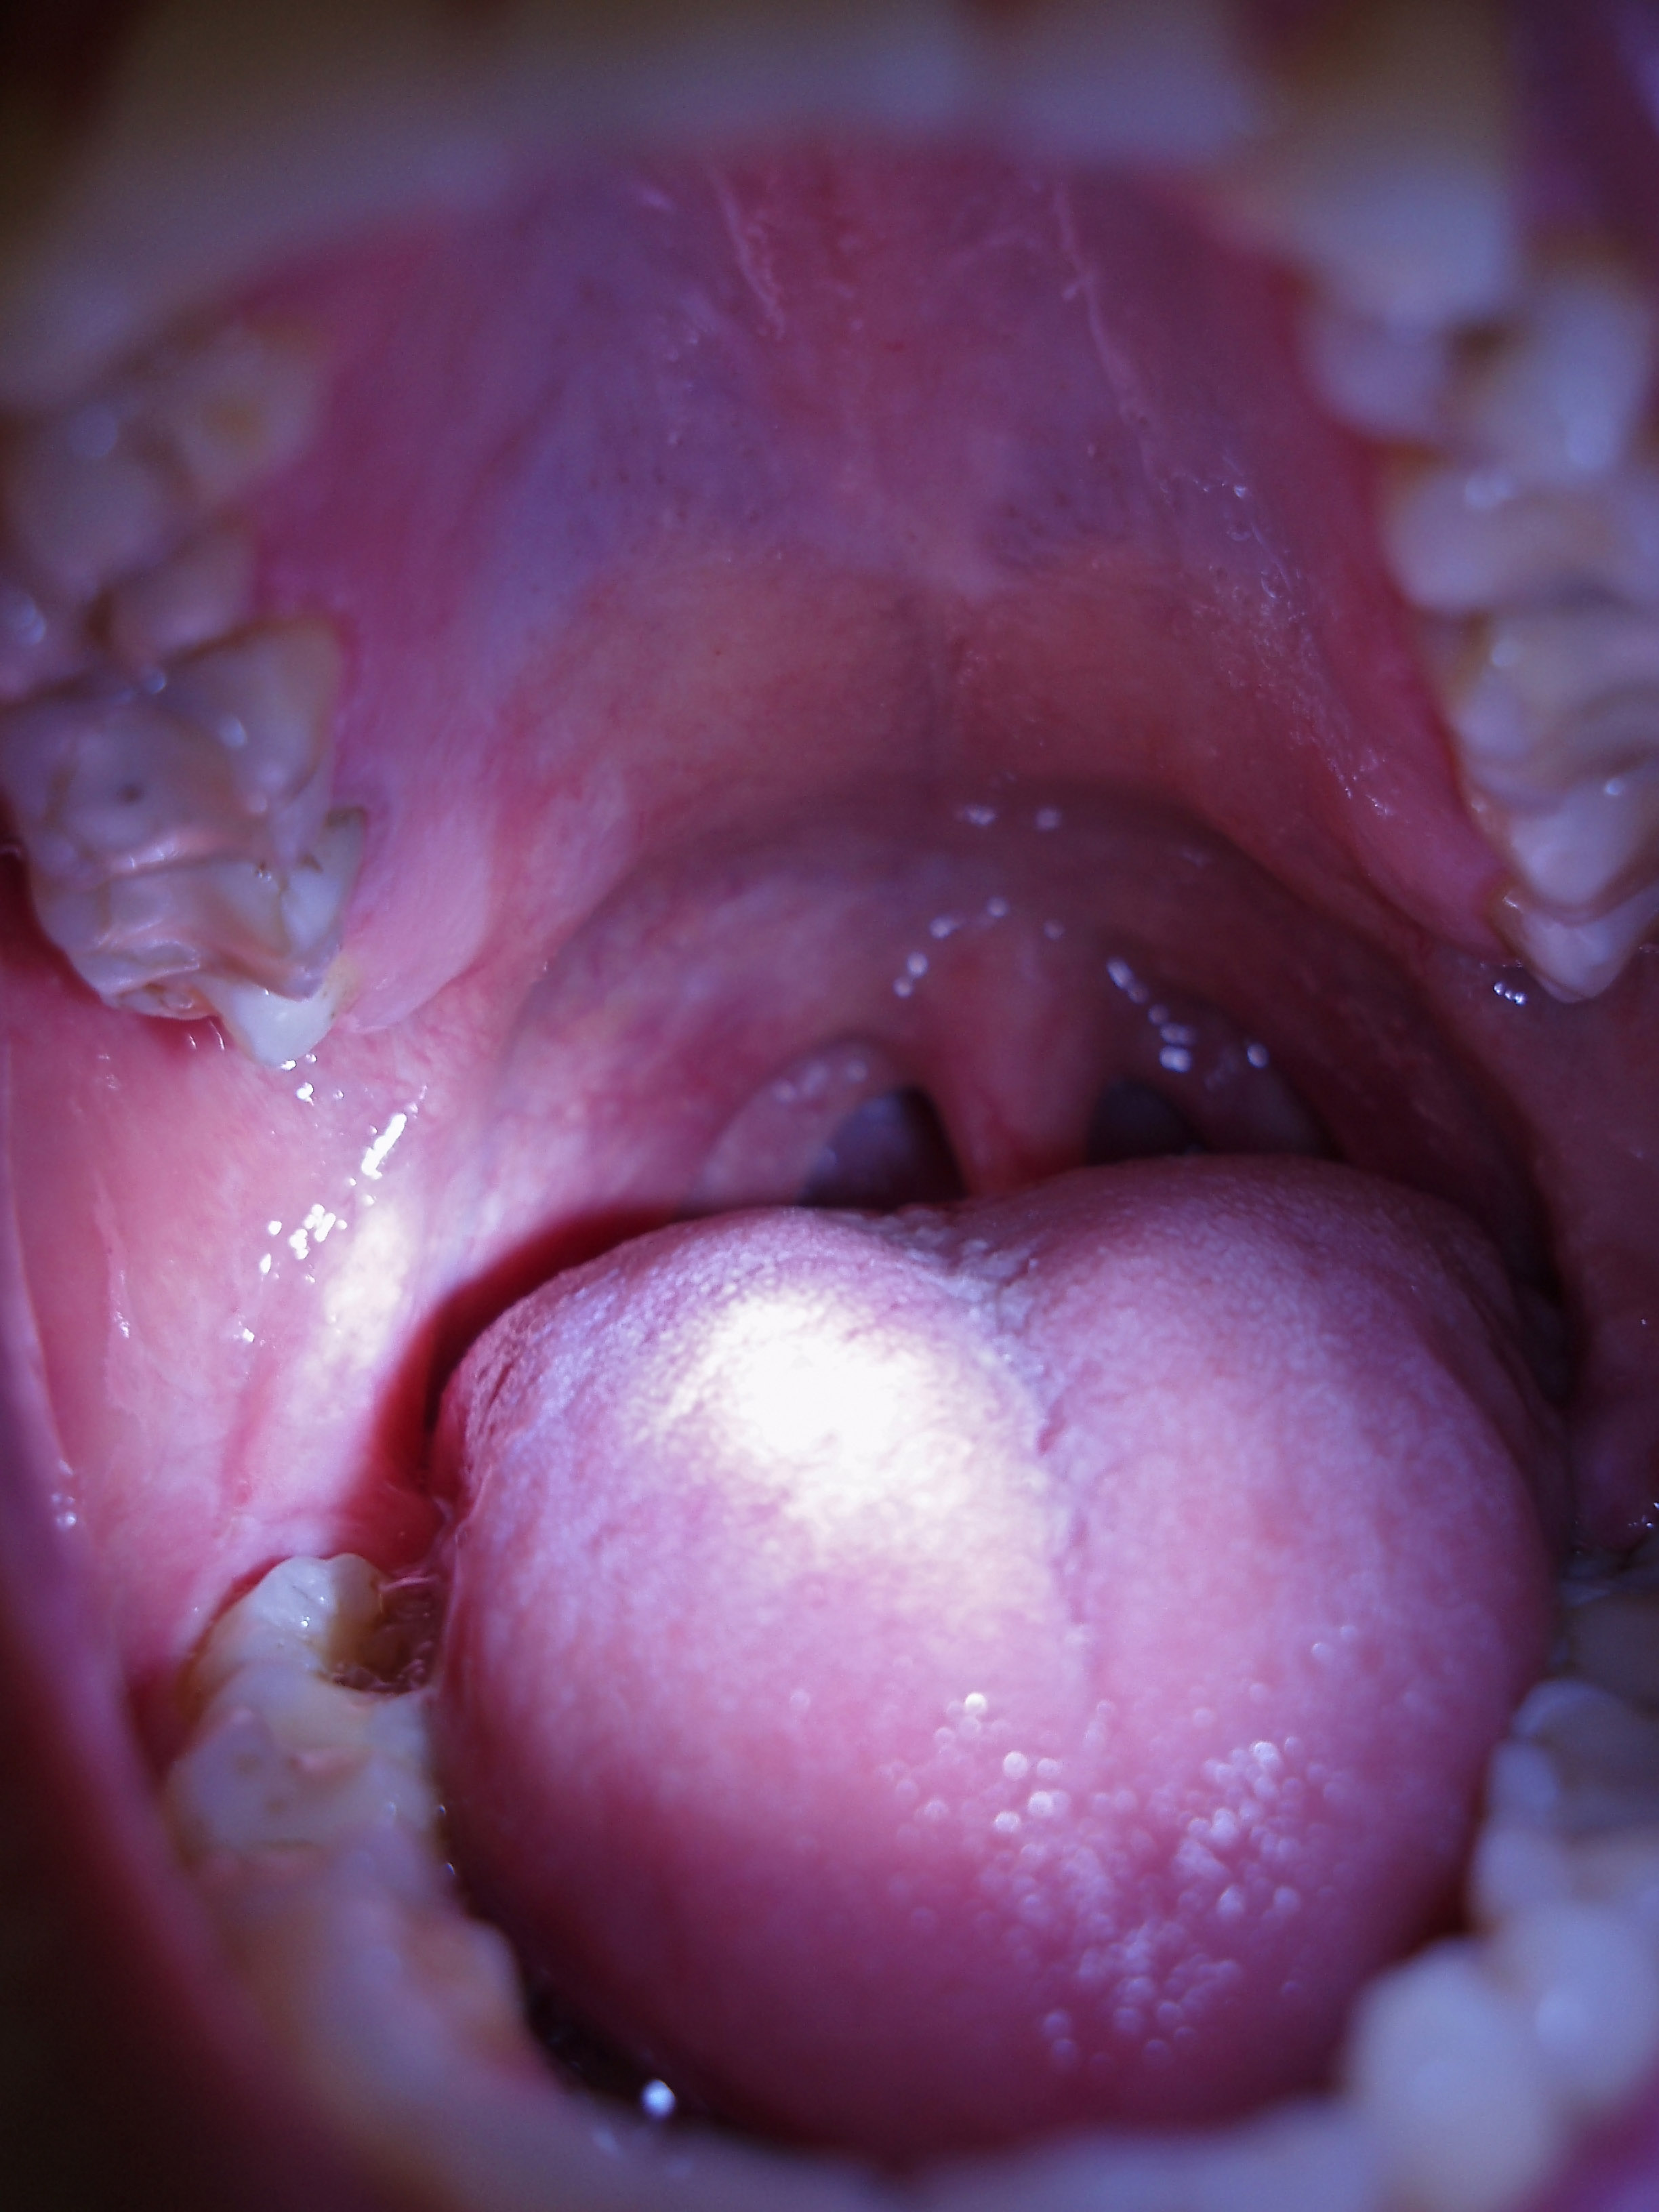 inside of a wide open mouth